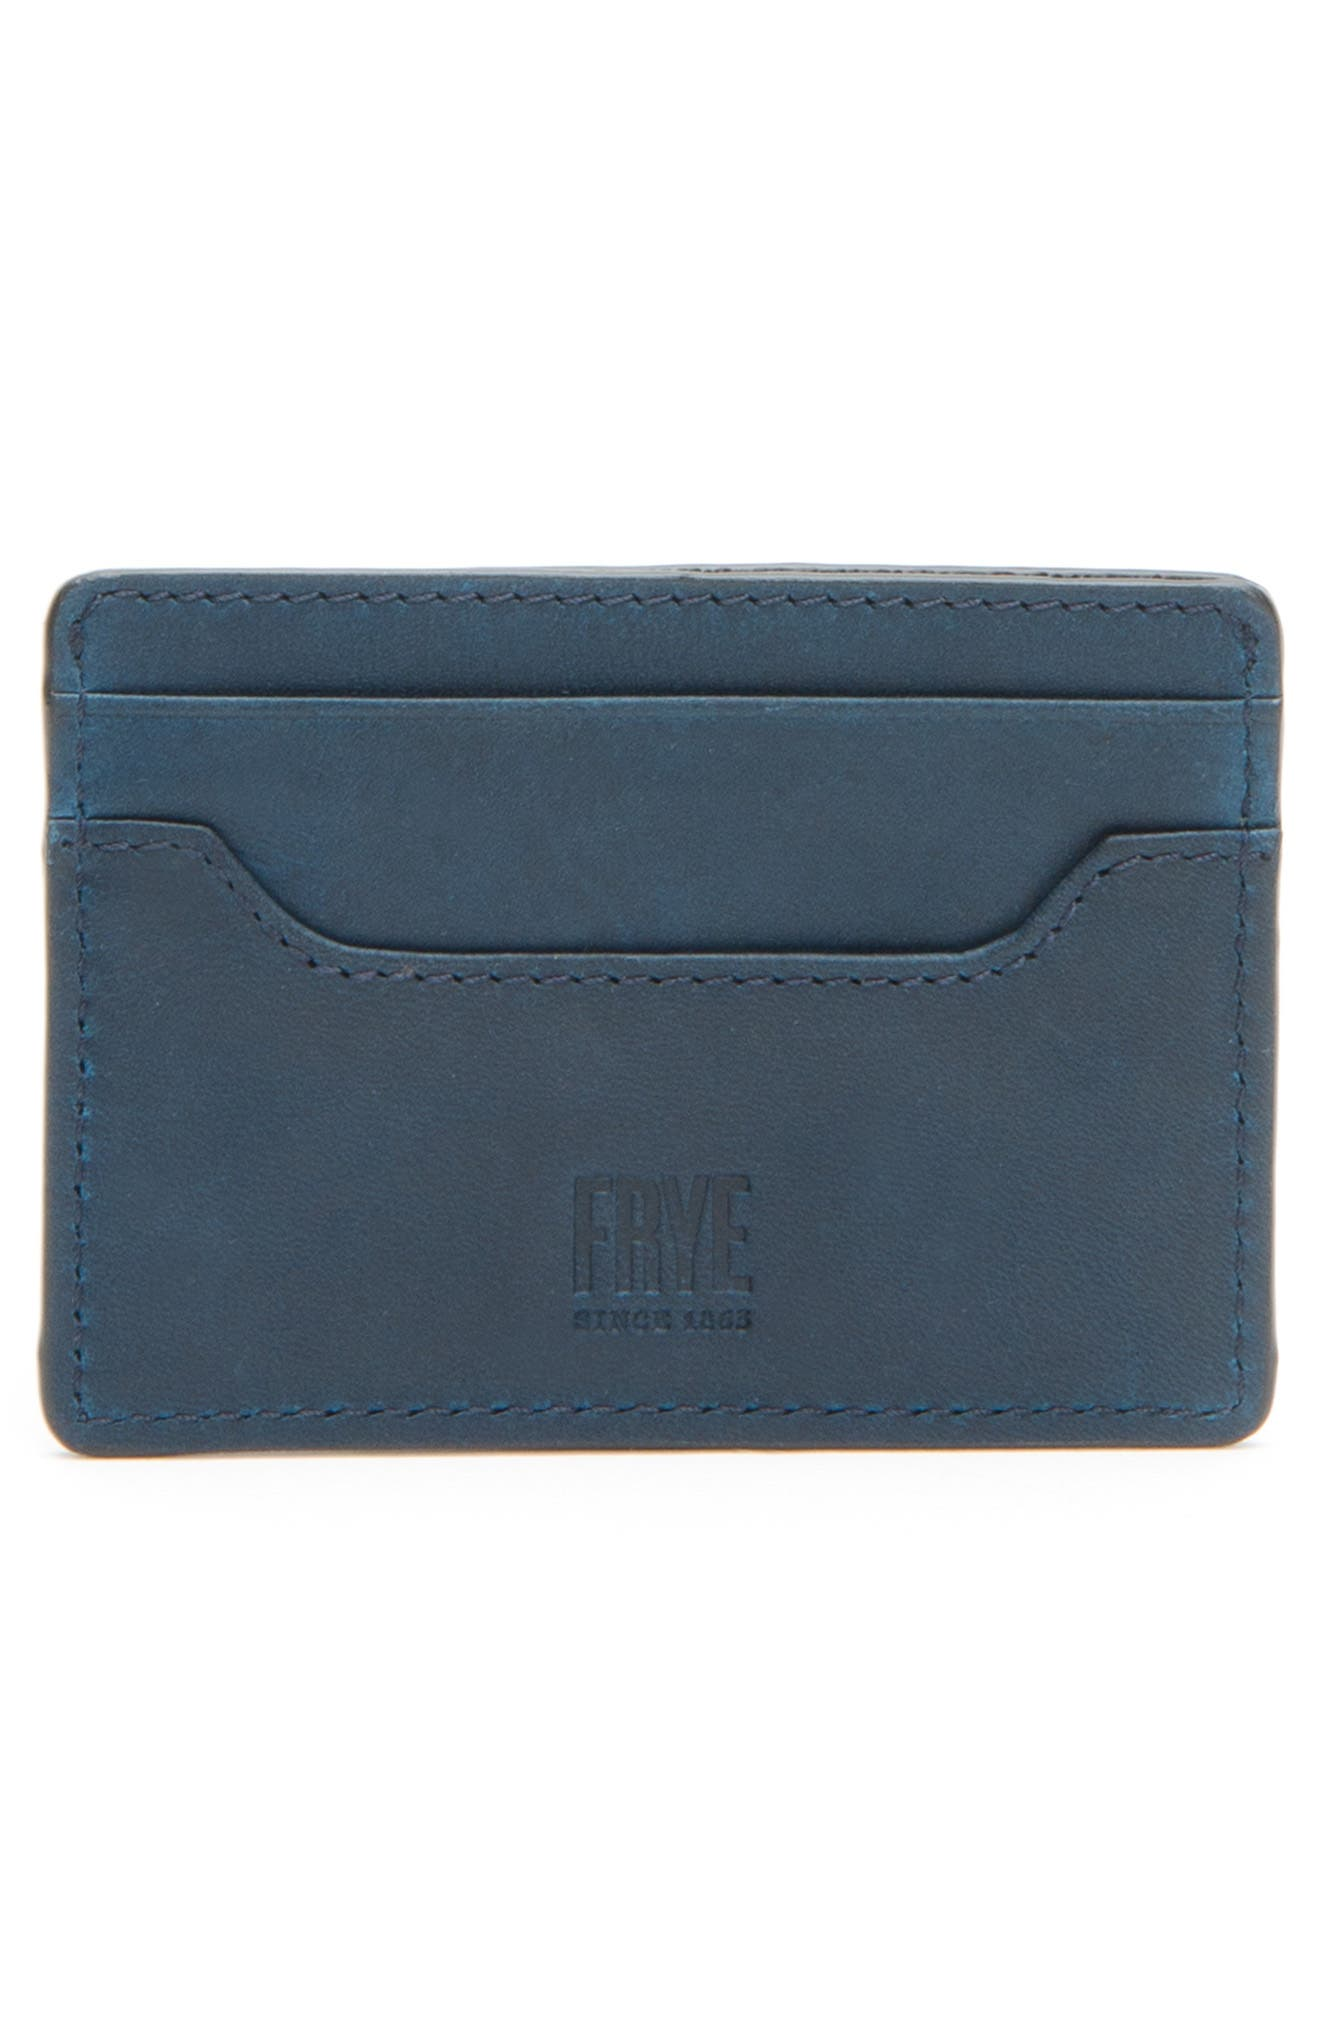 'Logan' Leather Card Holder,                             Alternate thumbnail 3, color,                             NAVY